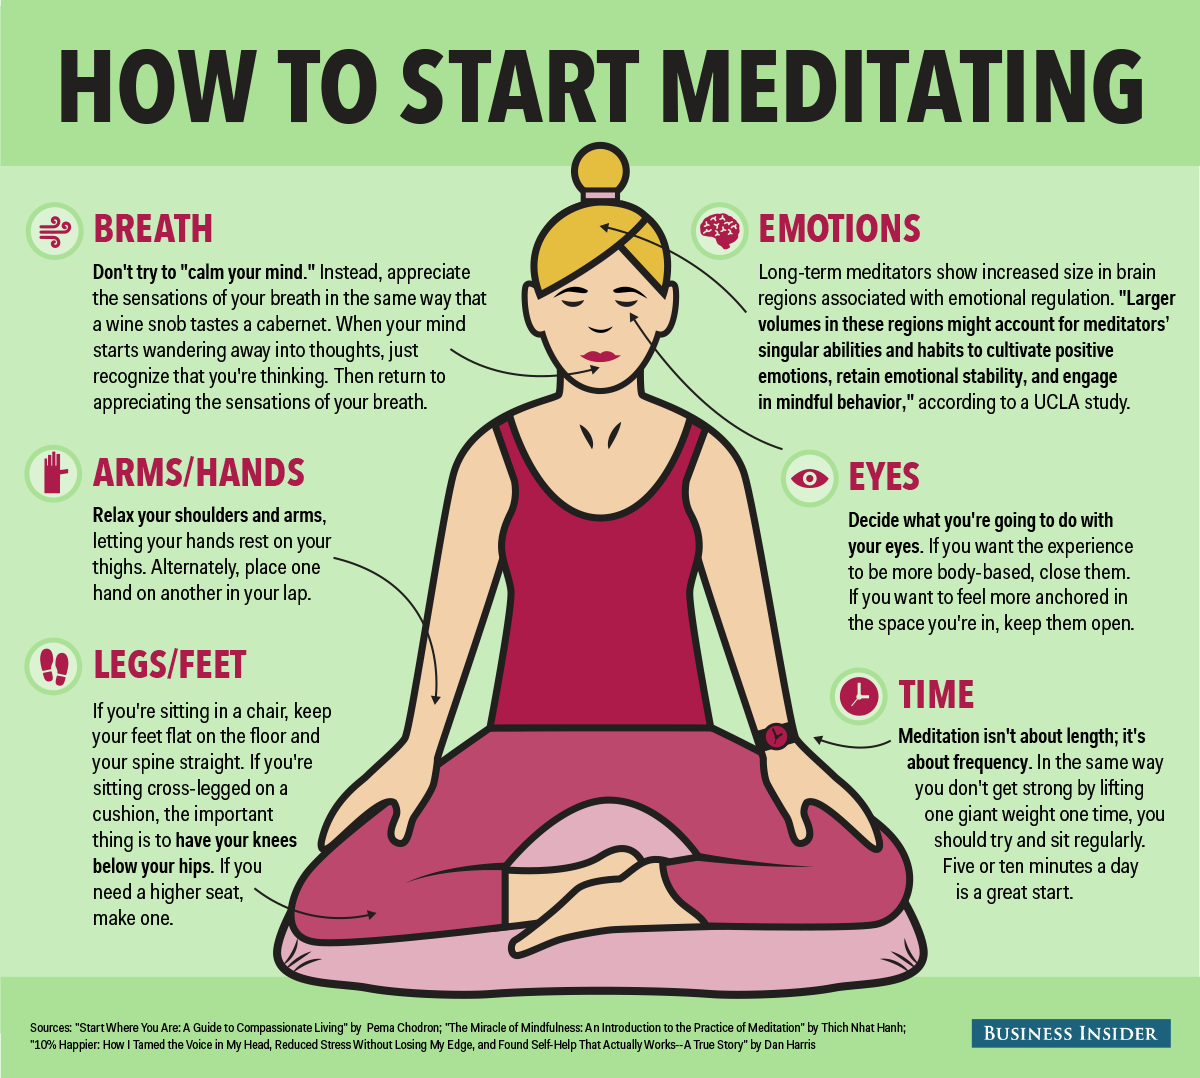 10 Best Meditation Apps to Start Meditating Easily